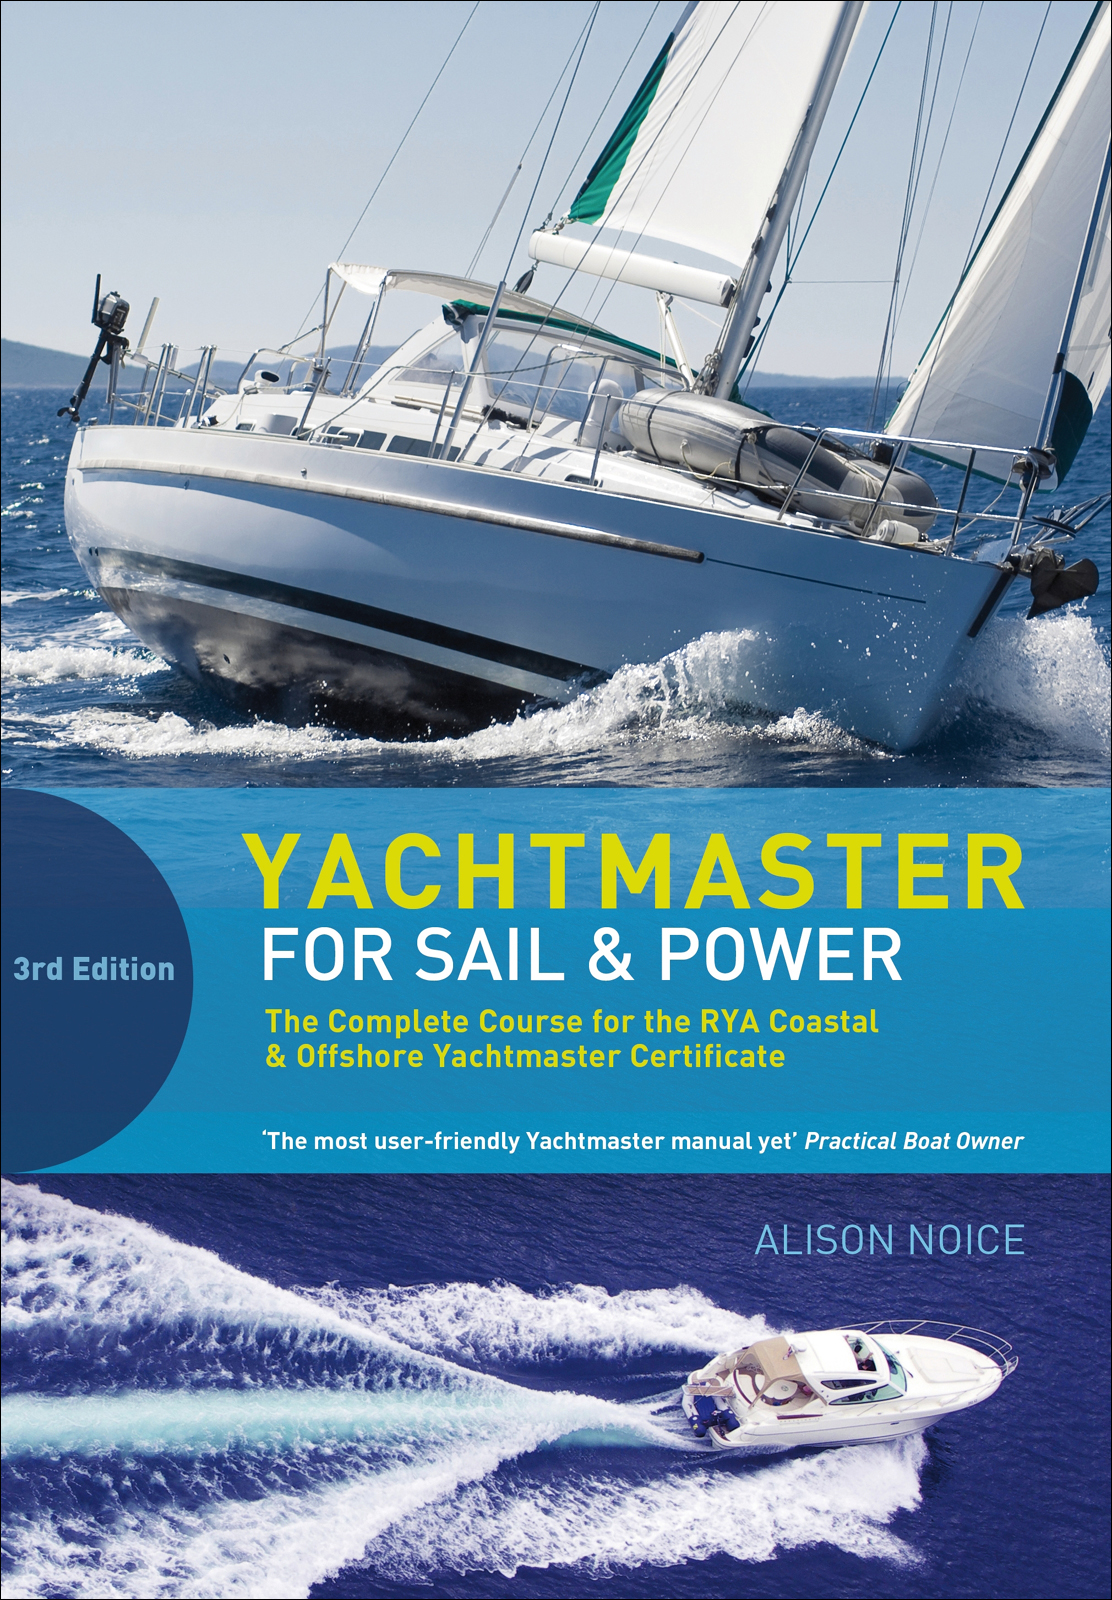 Yachtmaster for Sail and Power A Manual for the RYA Yachtmaster® Certificates of Competence